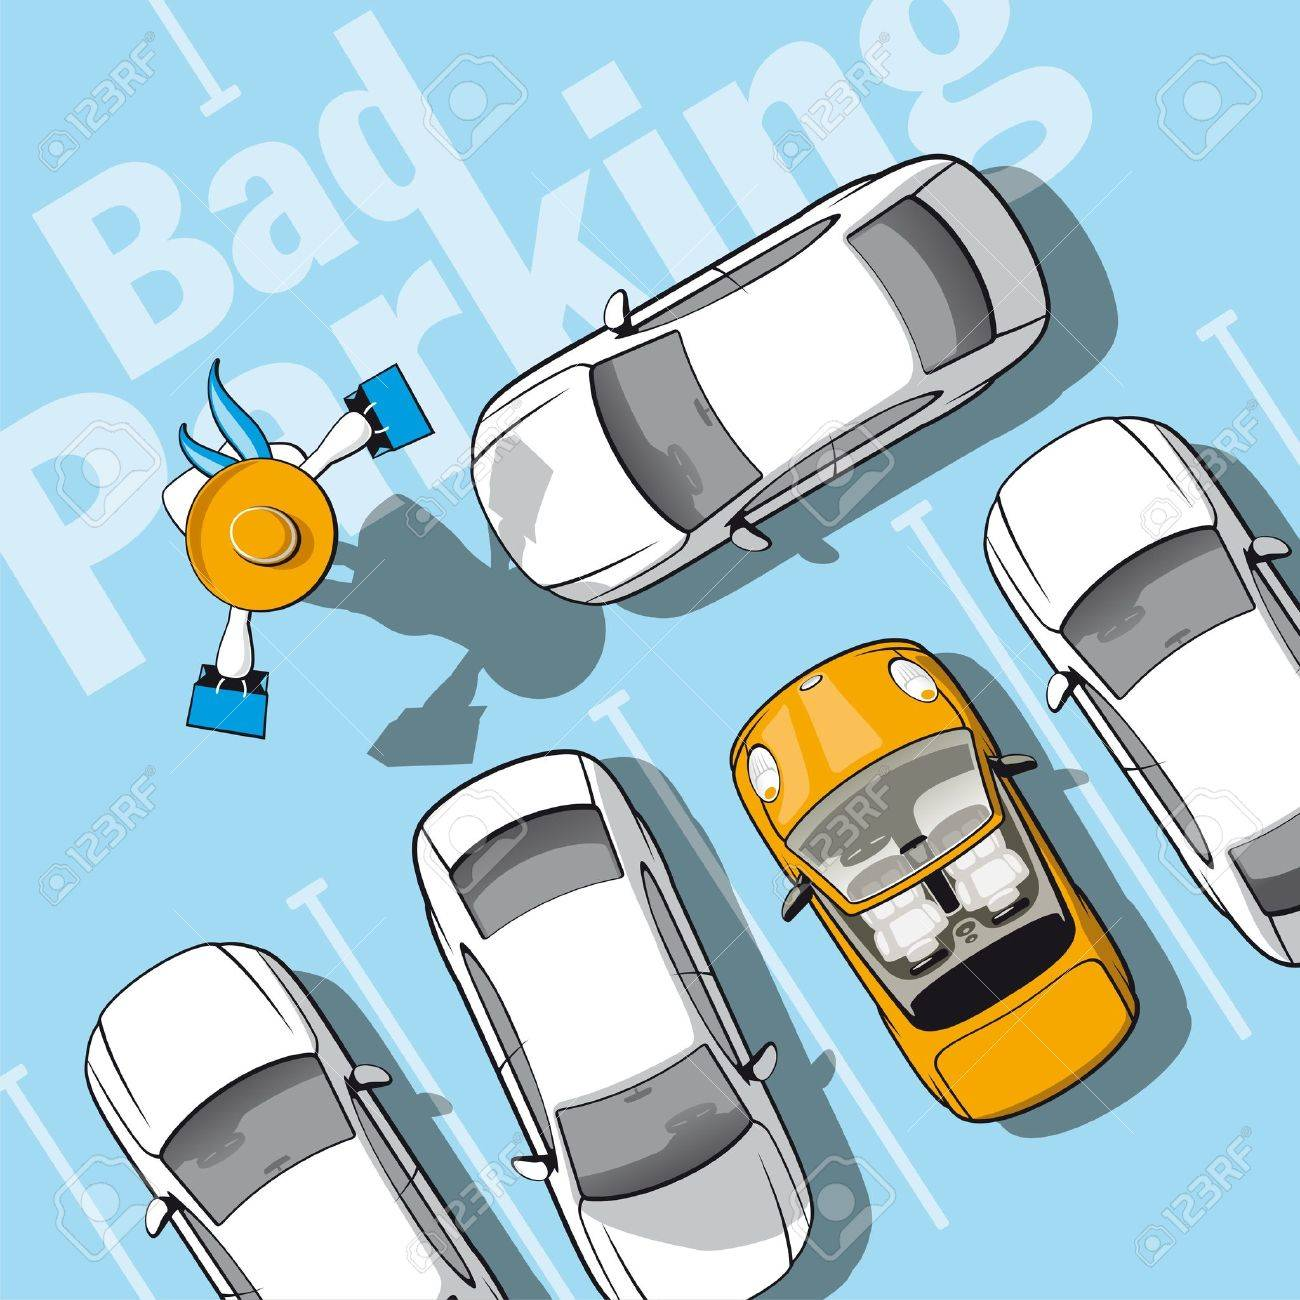 Bad parking  Illustration frustrated car owner who locked while she went shopping Stock Vector - 18393267